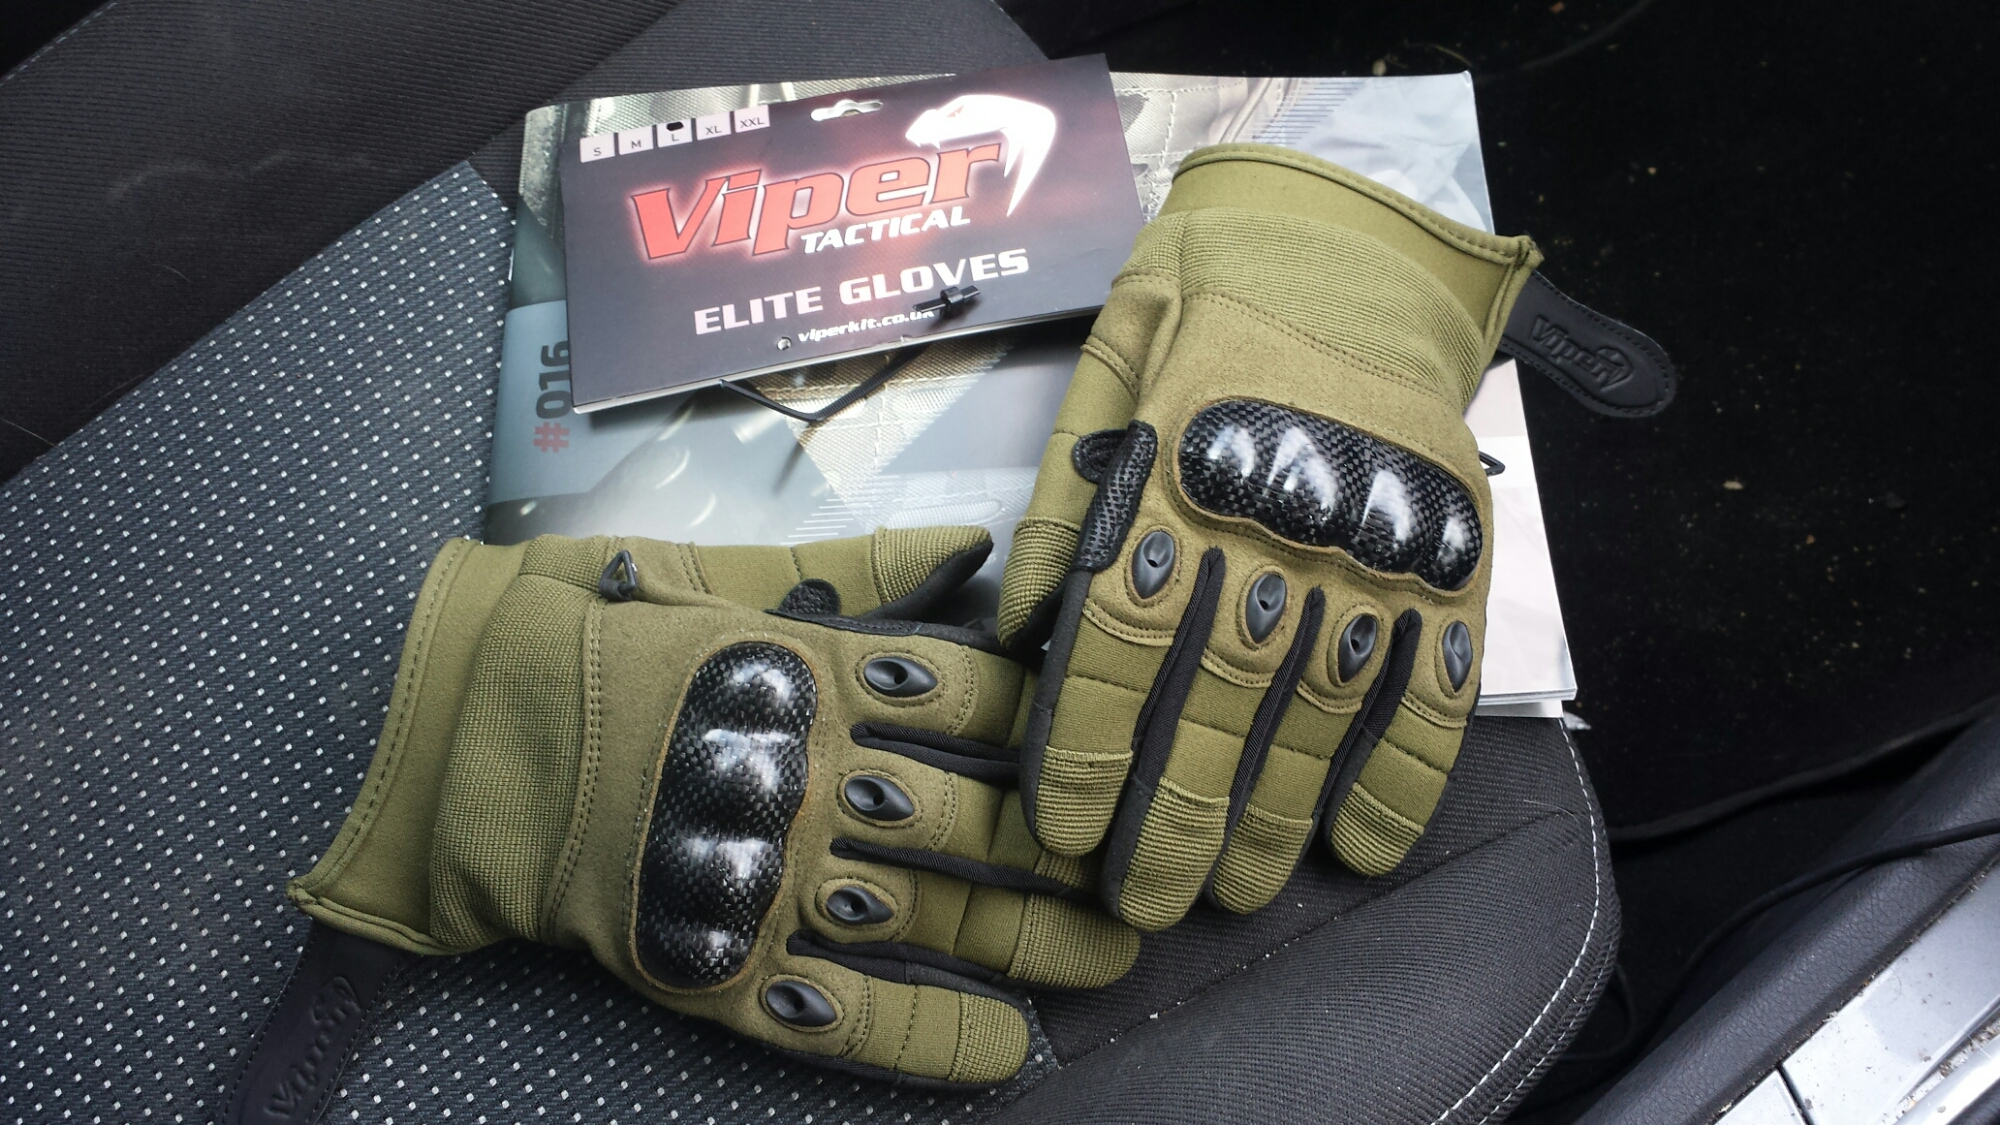 oakley hard knuckle tactical gloves g6fa  I opted for a pair in Green for woodland use, size large Viper advised me  to measure my hand from tip of my middle finger to the heel of my palm and